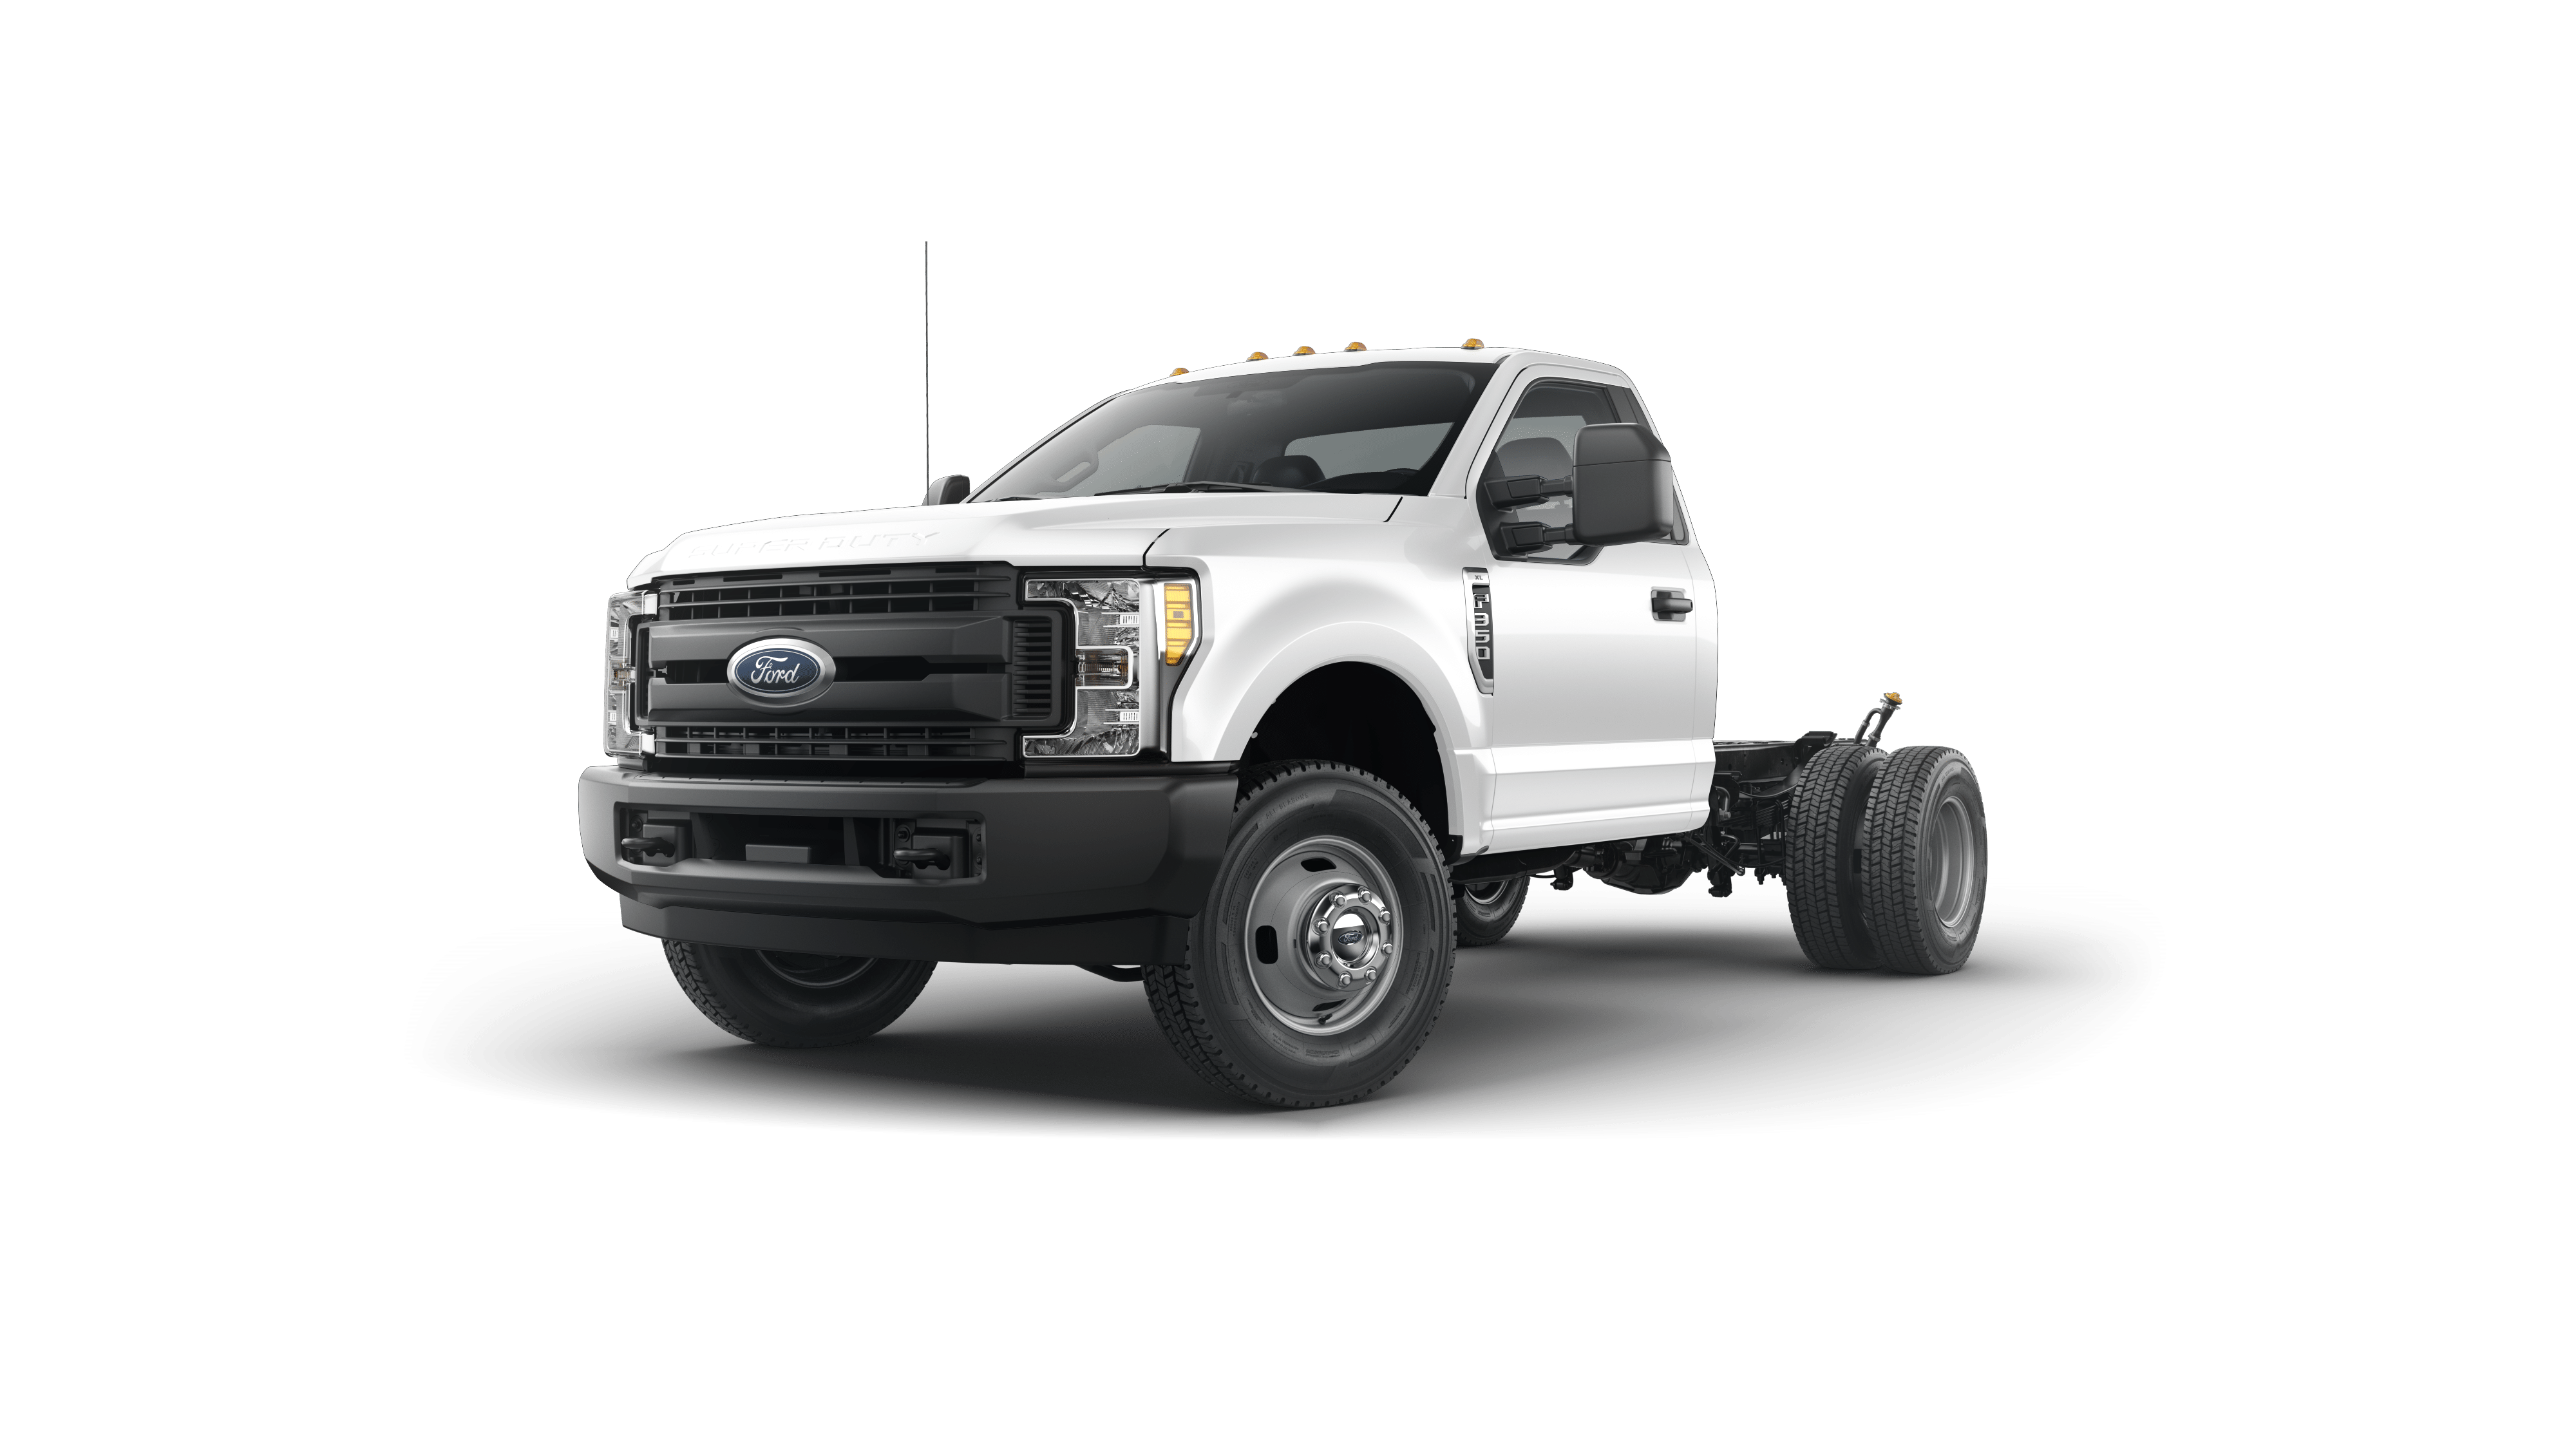 2019 Ford Super Duty F-350 DRW Vehicle Photo in Quakertown, PA 18951-1403